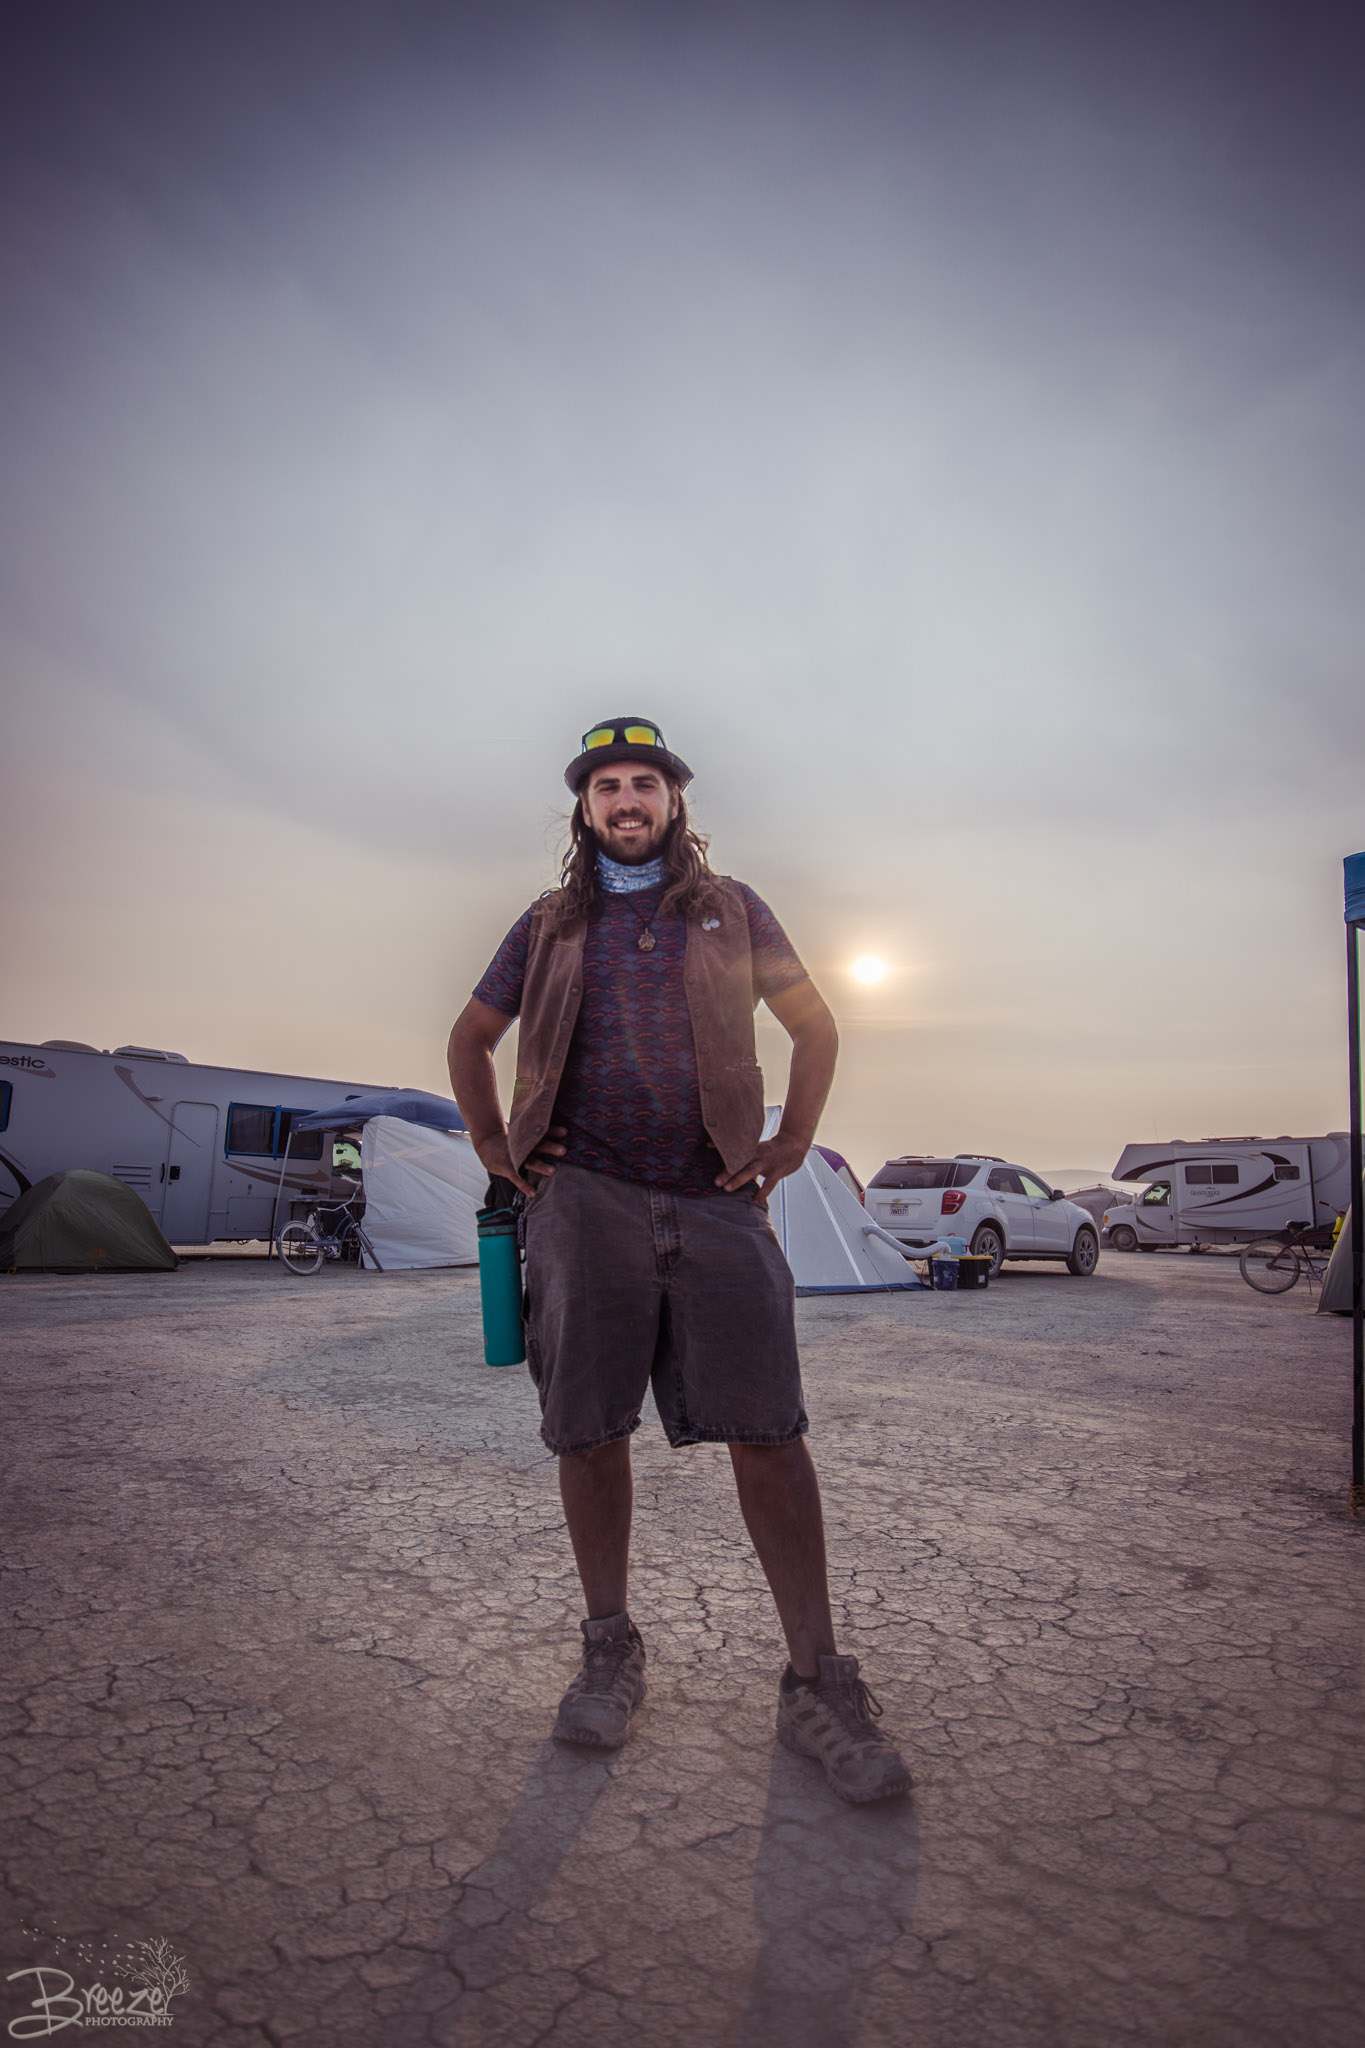 Brie'Ana Breeze Photography & Media - Burning Man 2018--2928.jpg